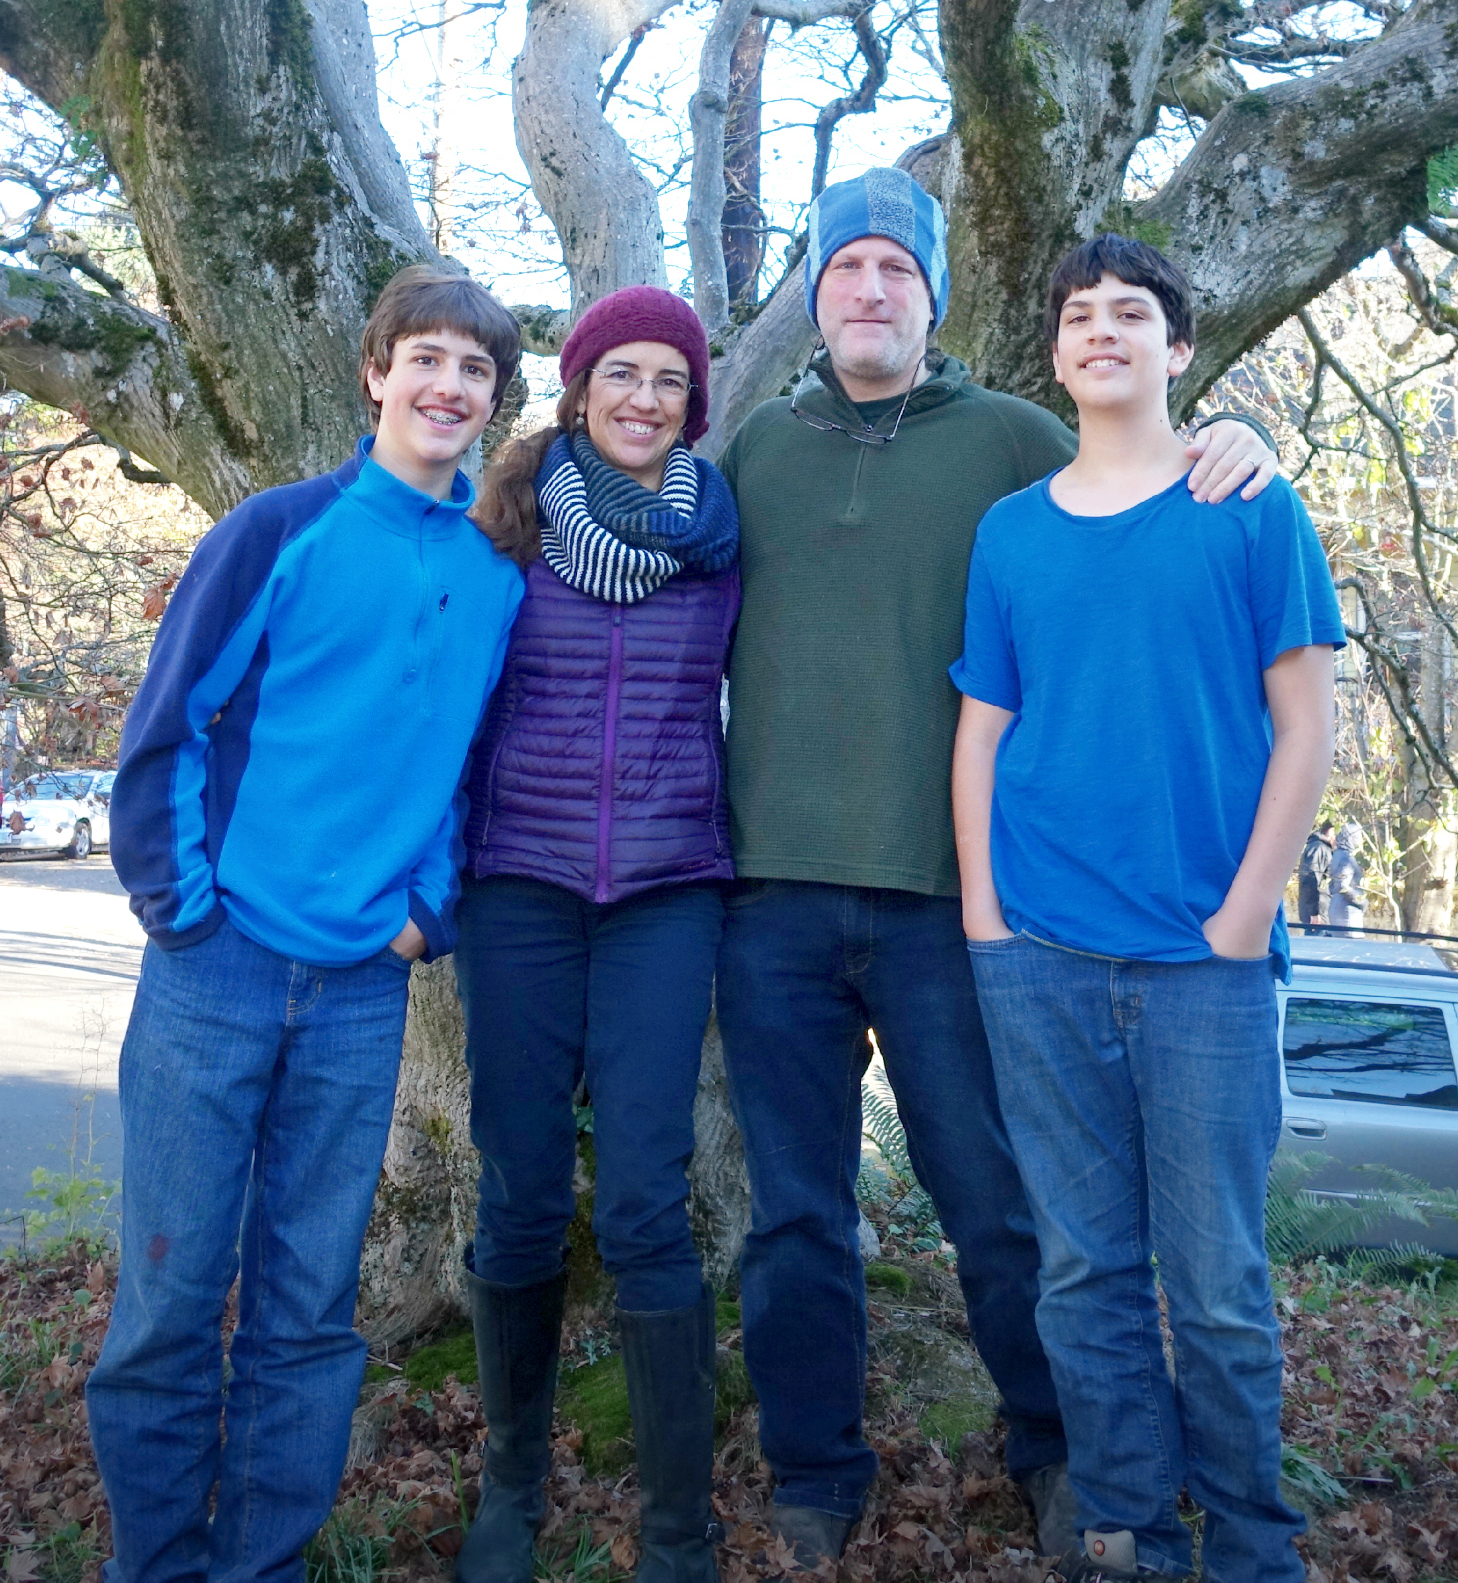 Family w/ Tree (Cropped)